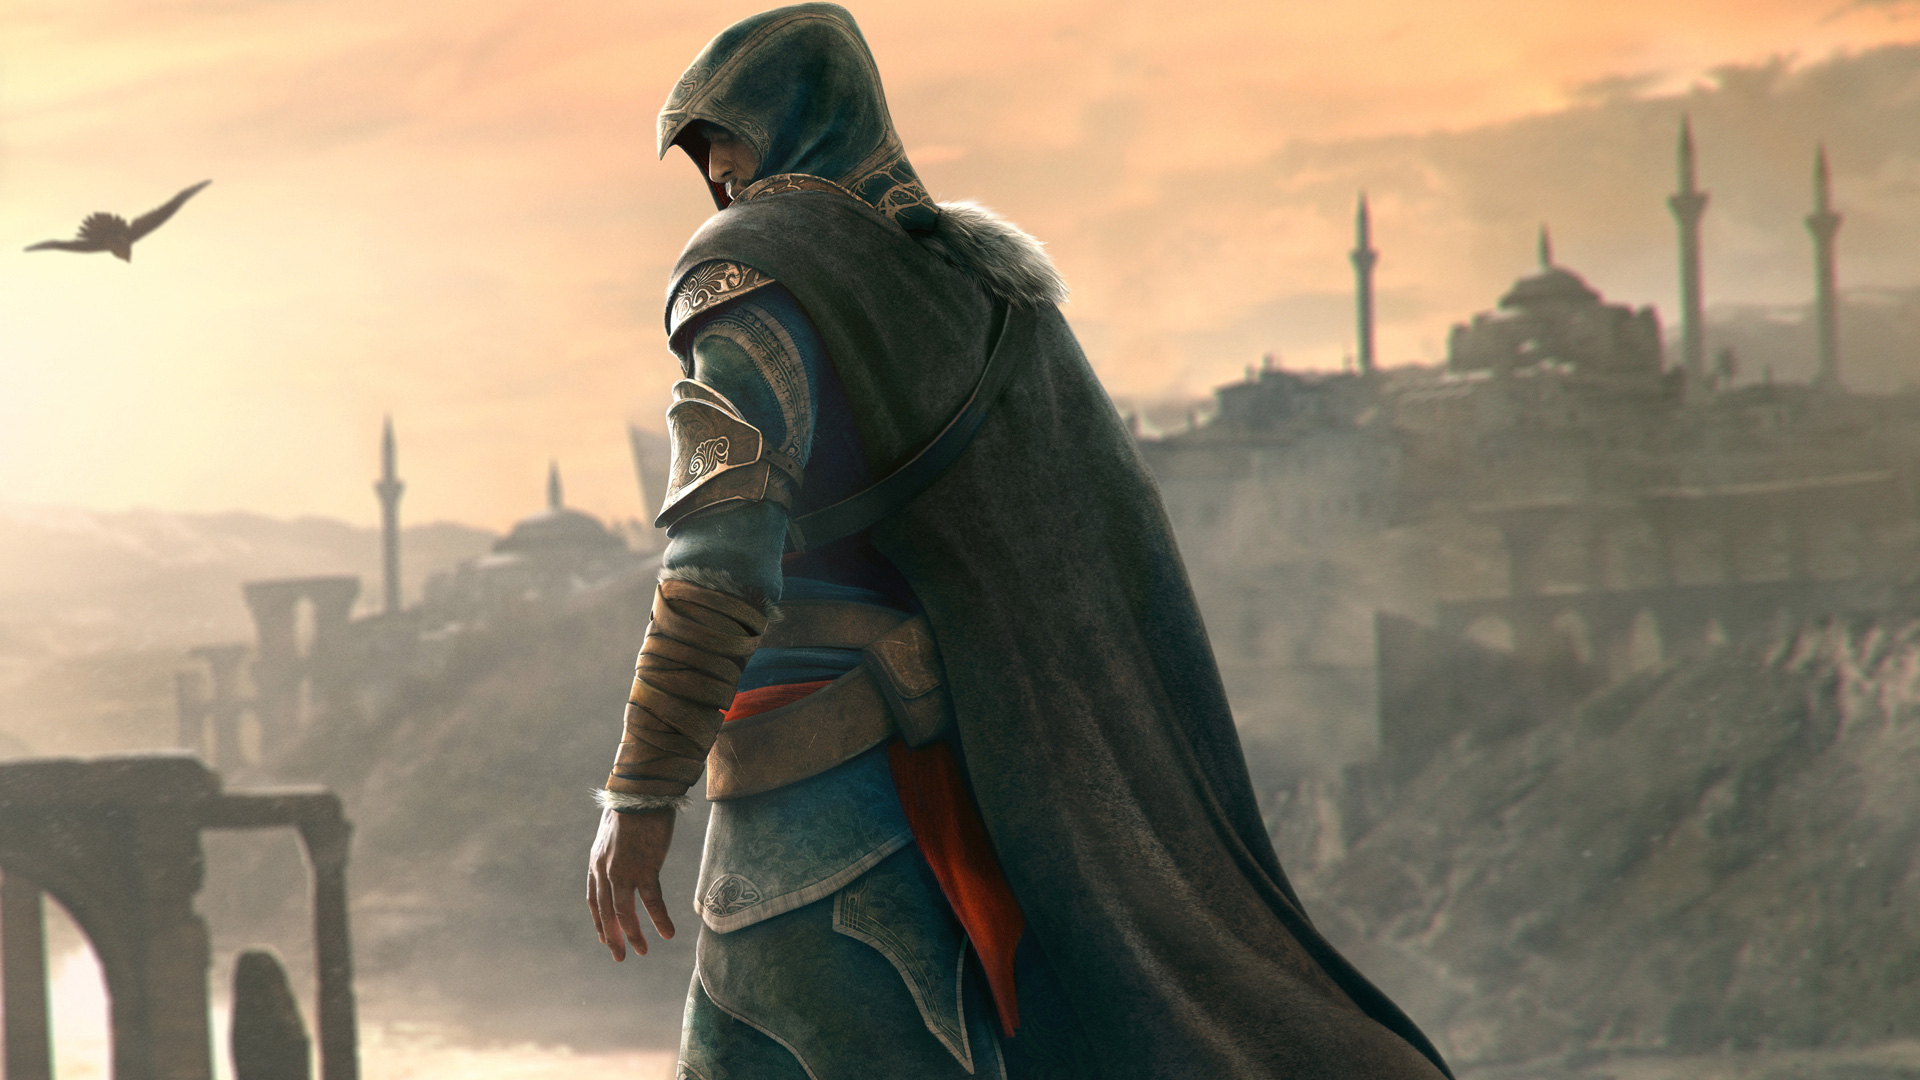 Free Assassin's Creed: Revelations Wallpaper in 1920x1080